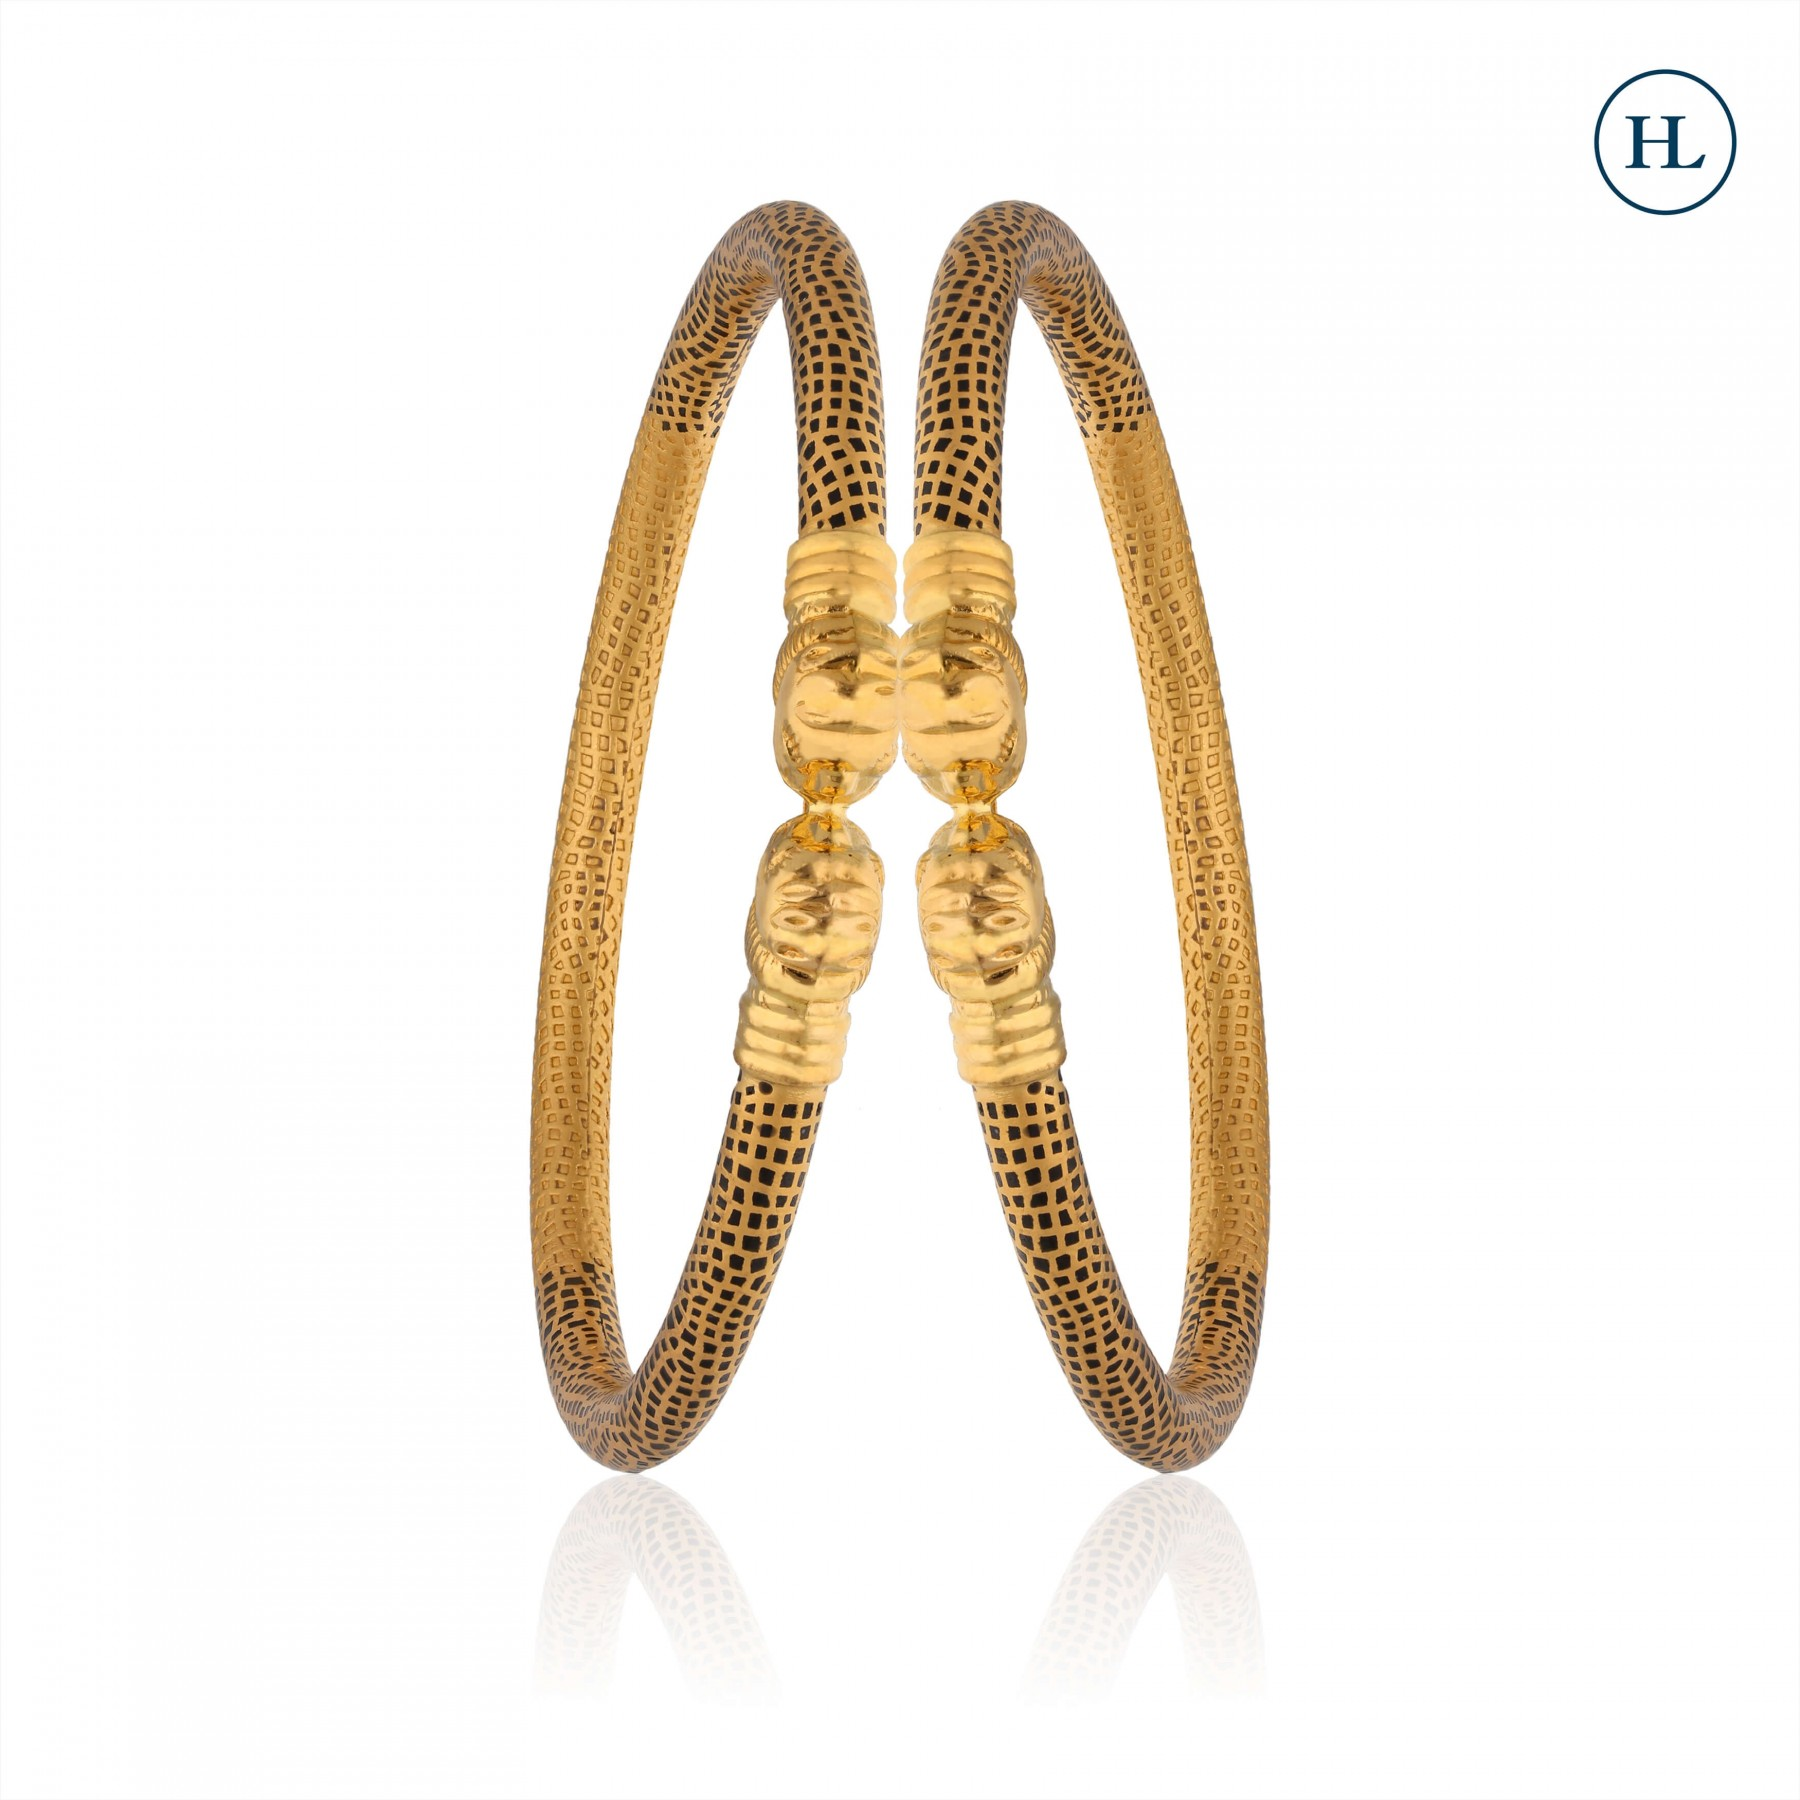 Hollow Pipe Gold Bangle Pair